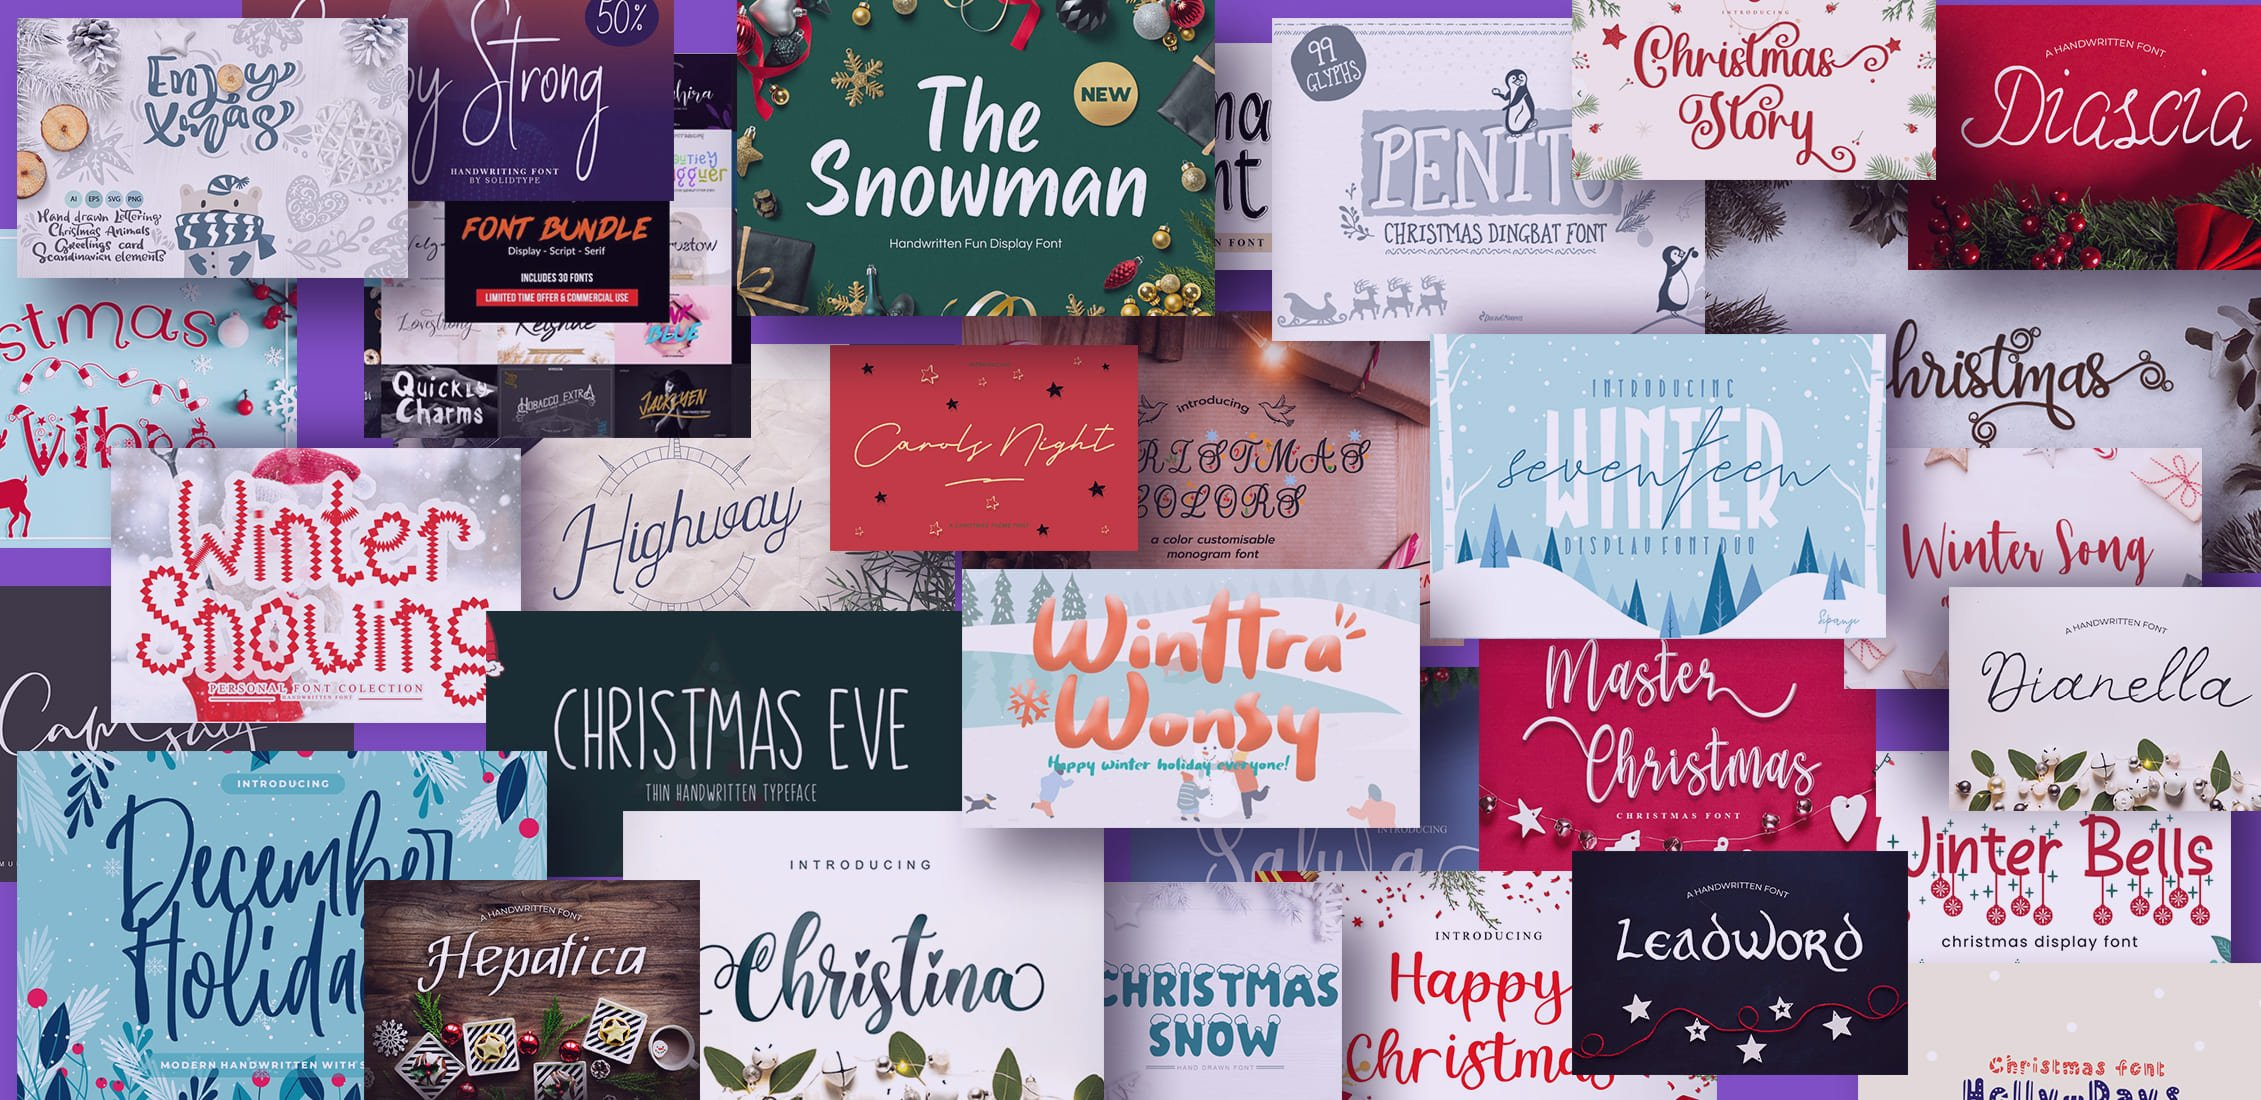 100+ Christmas Clipart Images 2020: Free & Premium - best christmas fonts